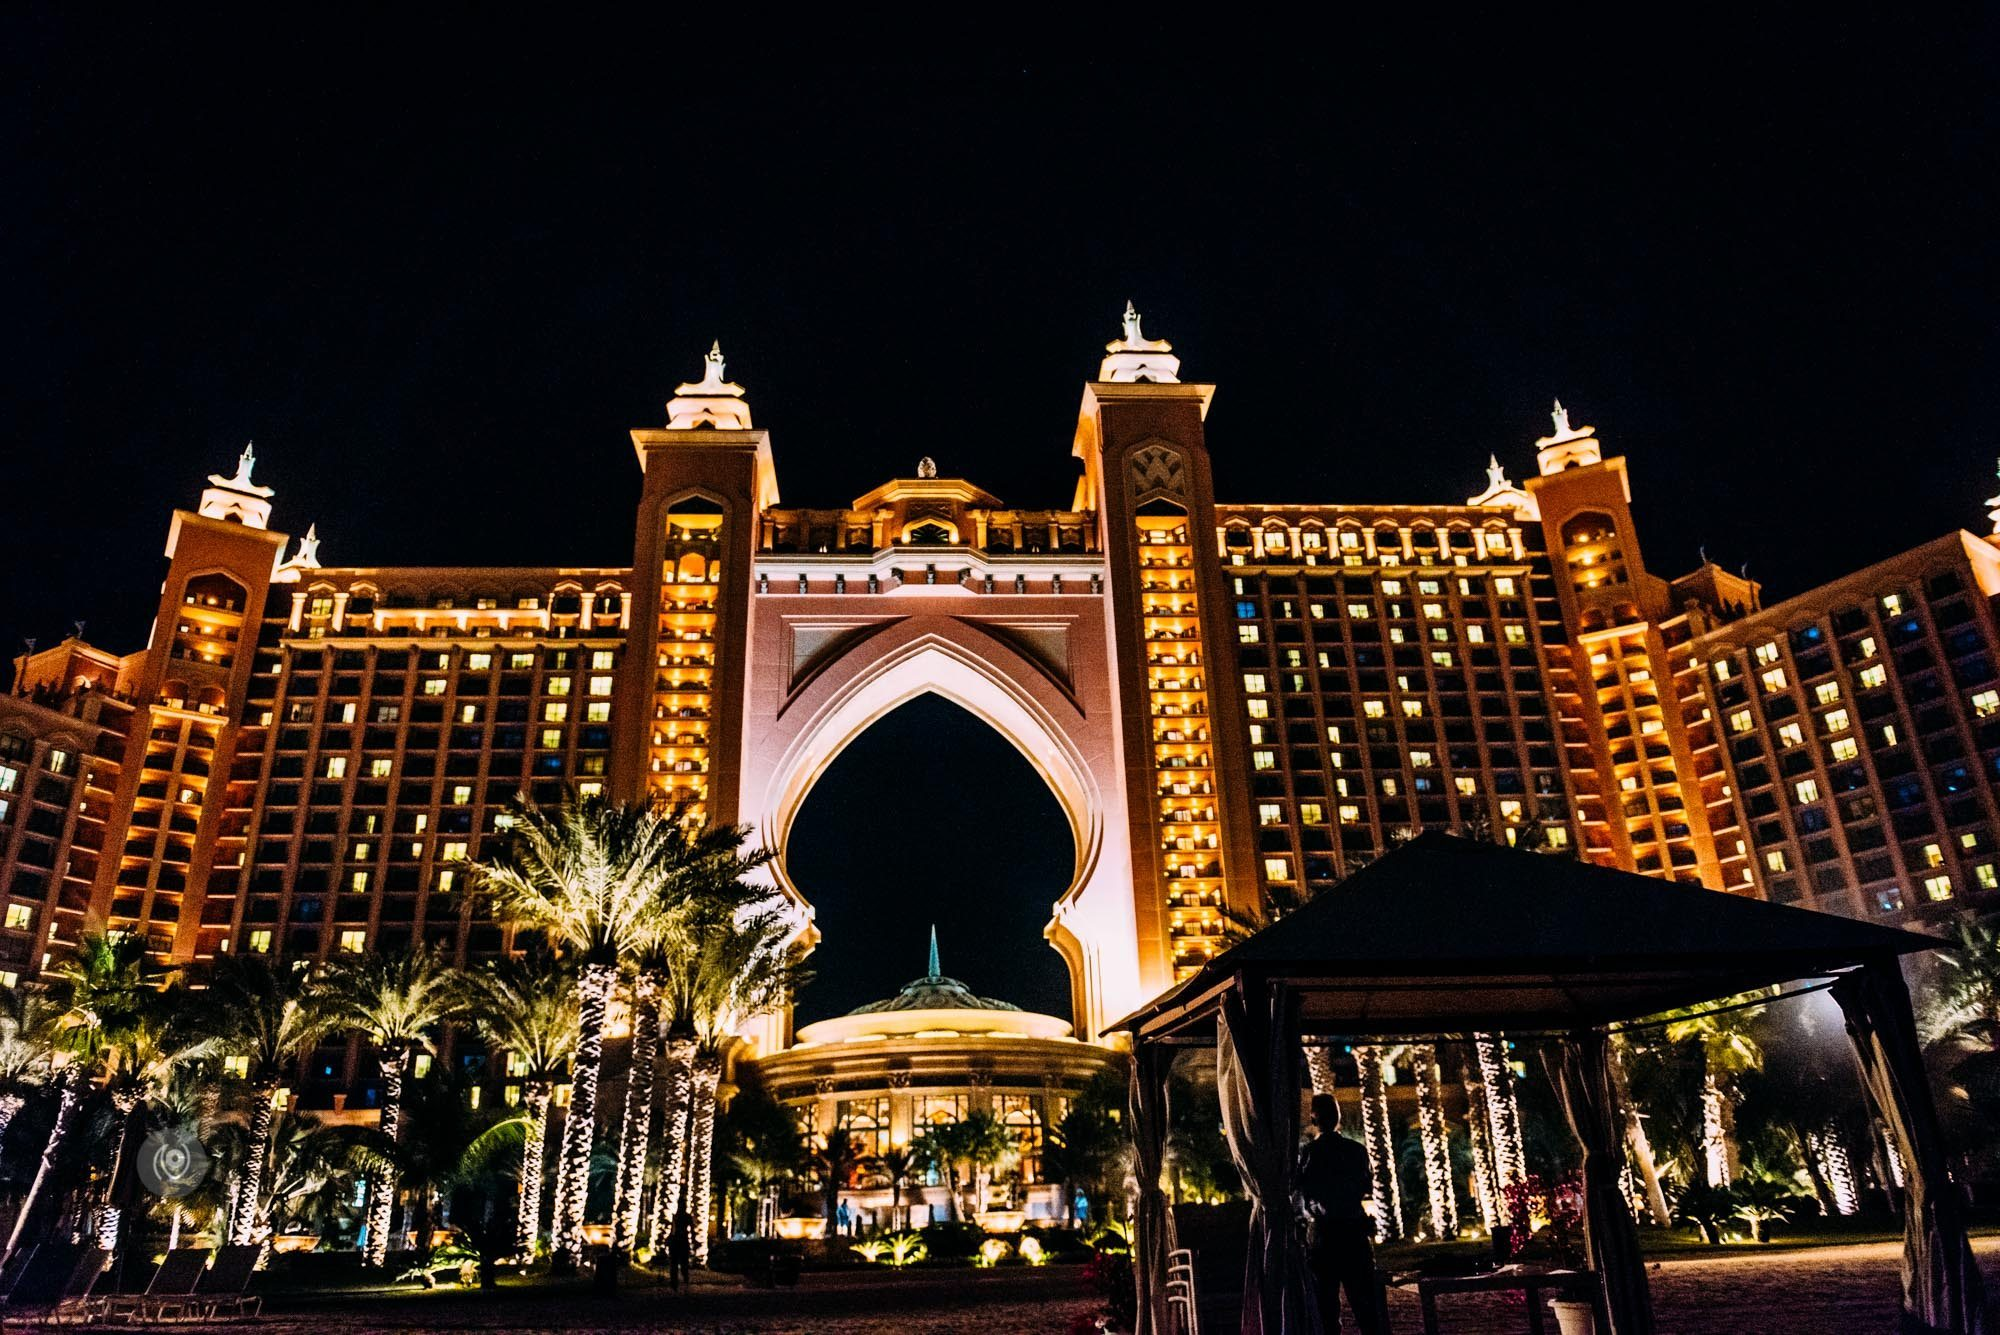 Naina.co, #EmiratesHolidays, #REDHUxEmirates, #EyesForDubai, Atlantis The Palm, Atlantis Resort, Atlantis Hotel, UAE, Dubai, Travel Photographer, Travel Blogger, #EyesForLuxury, #EyesForLifestyle, Experience Collector, Timelapse Photographer, Timelapse Video, Room With a View, Suite, Arabian Sea, Middle East, DXB, Monorail, Beach, Holiday, Summers, Cityscape, Naina Redhu, Professional Photographer, Taj Dubai, Palazzo Versace, Heli dubai, At The Top, Burj Khalifa, Burj Al Arab, Cityscape, Skyline, Ocean, Dubai Airport, Yuan, Bombay Brasserie, Bateaux Dubai, Cruise, St. Regis Dubai, Bloomingdales, Marina, Dubai Mall, Palace Downtown, Aquarium, Arabian Adventures